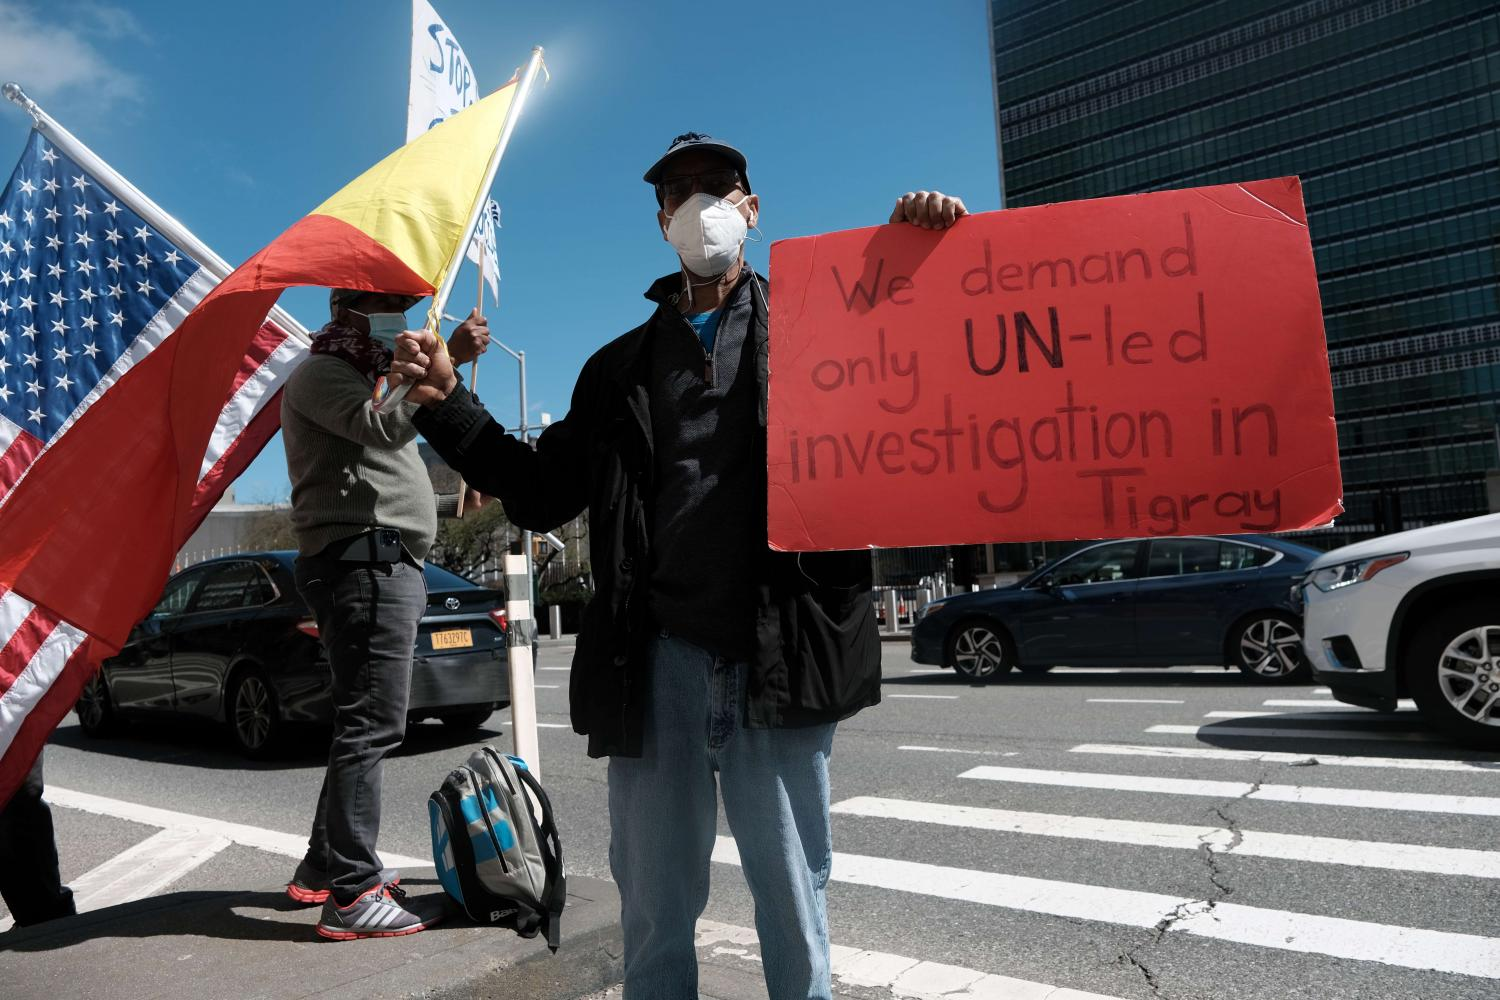 A small group of Tigrayan protesters gathers outside the United Nations on March 29 in New York City, calling for action to be taken against the Ethiopian government.(Photo: AFP)